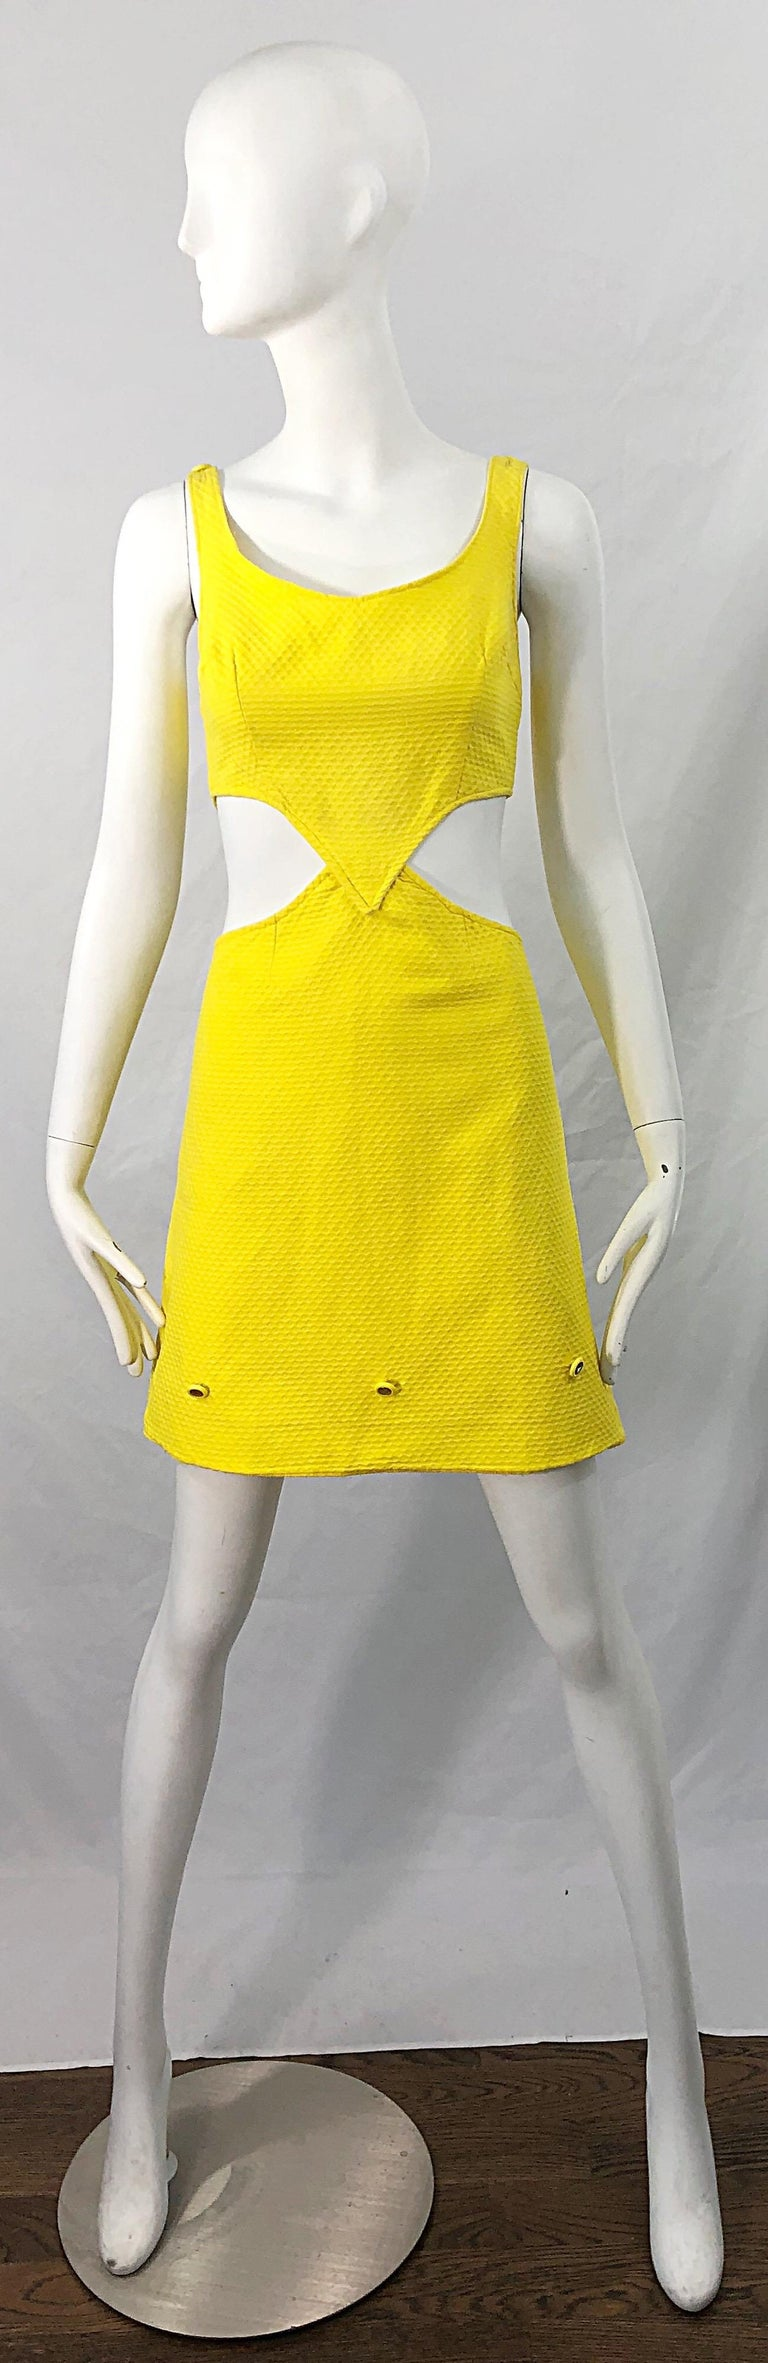 Chic 1960s canary yellow honeycomb pique cotton cut-out A Line dress ! Features cut-outs at each side of the waist. Adjustable gold glitter buttons at each shoulder to adjust length. Three of the same gold buttons along the front bottom of the